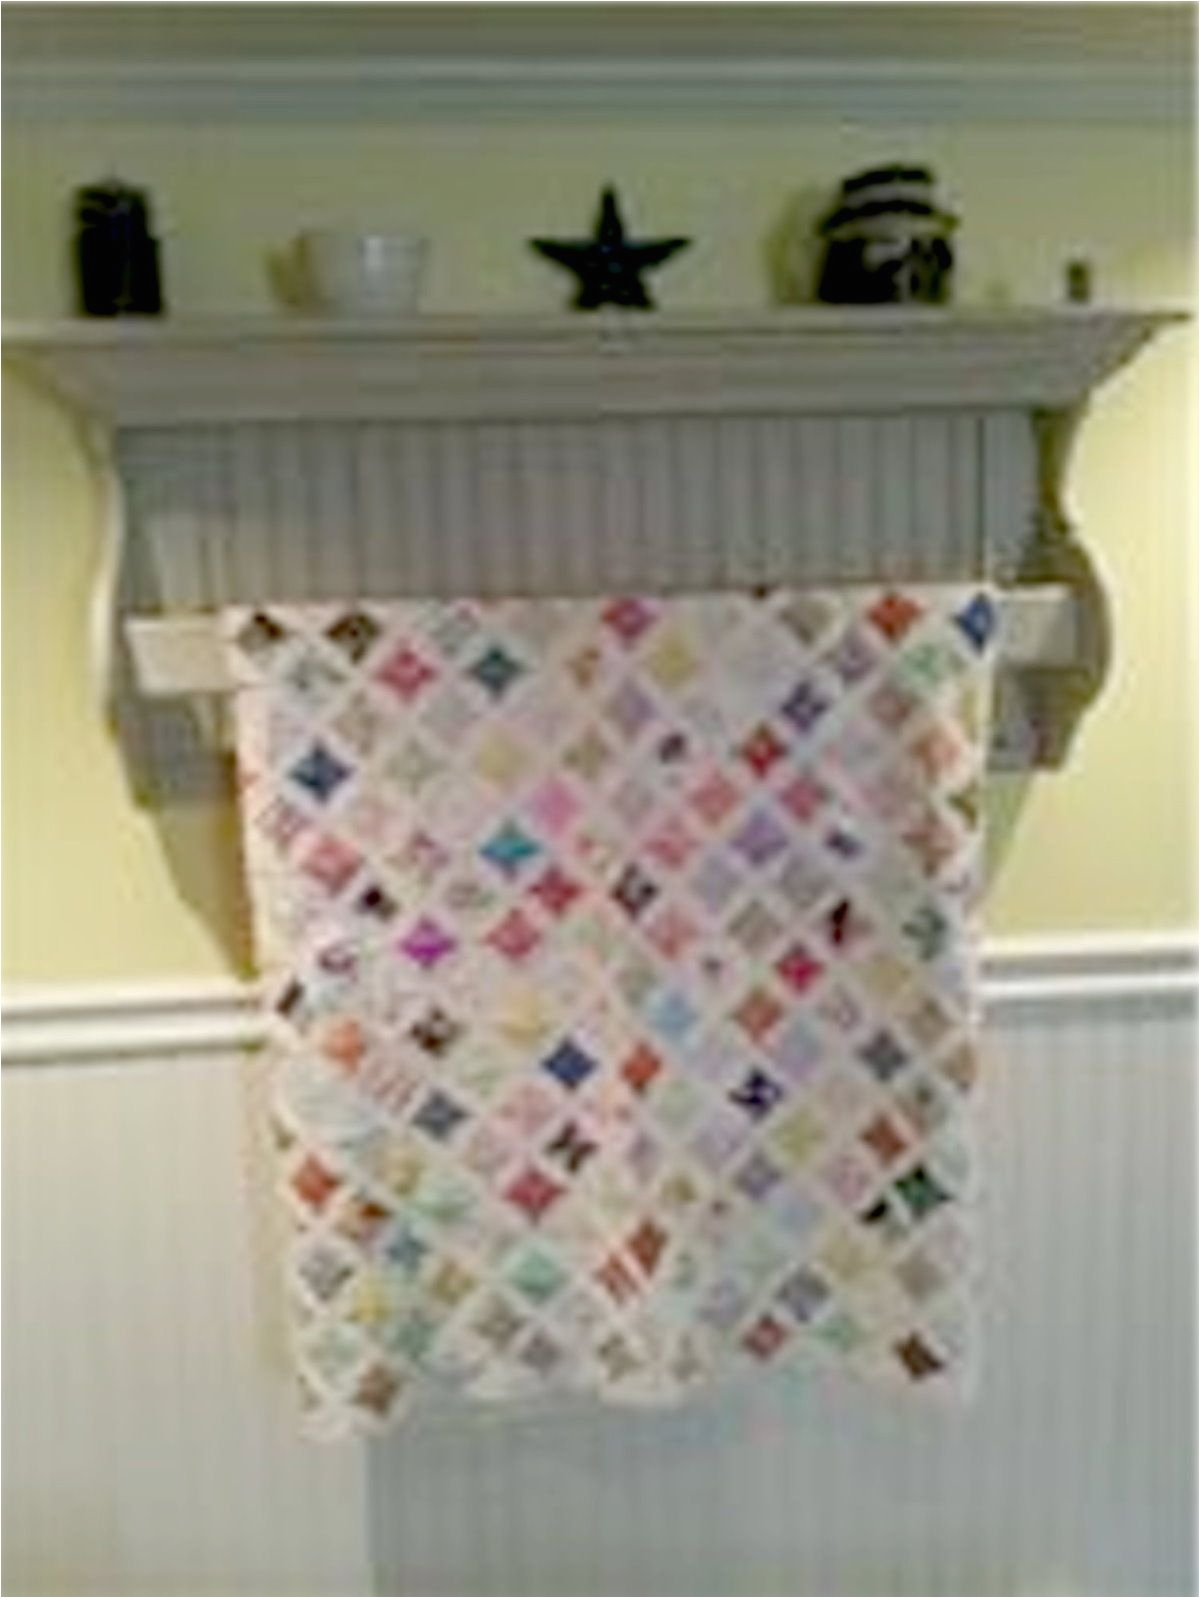 quilt rack but better in kitchen for towels and show off items